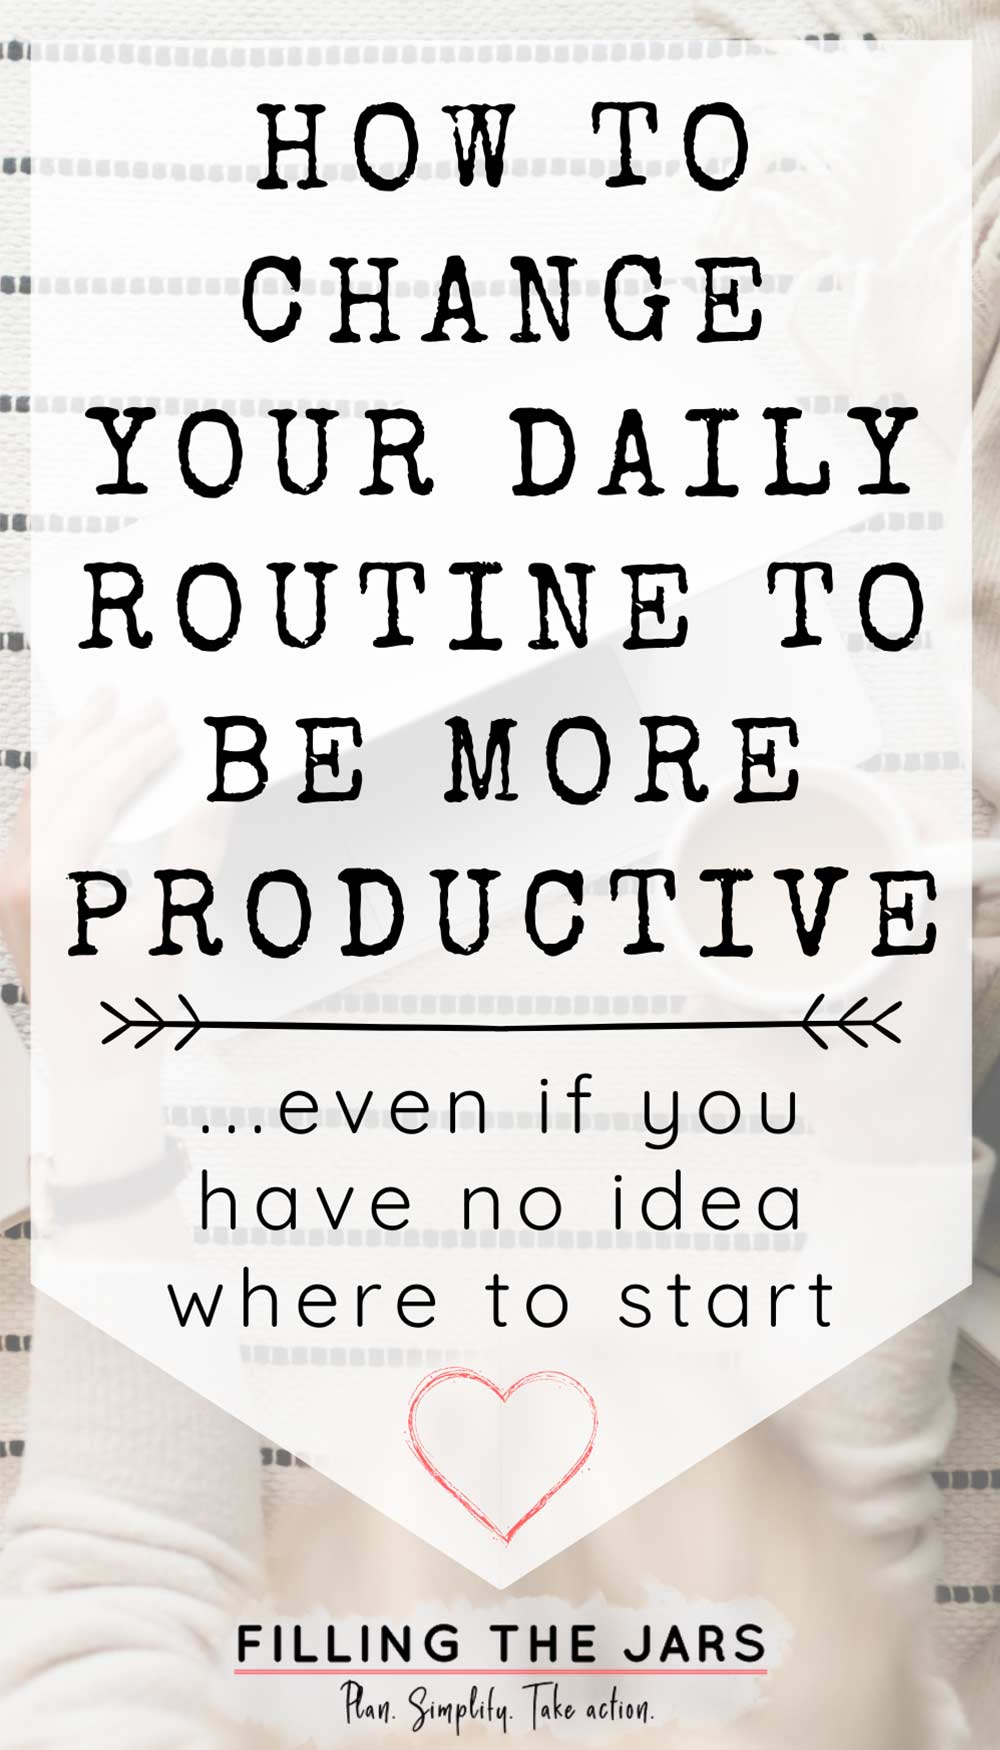 Text how to change your daily routine to be more productive on white background over image of woman holding coffee mug and opening laptop computer.